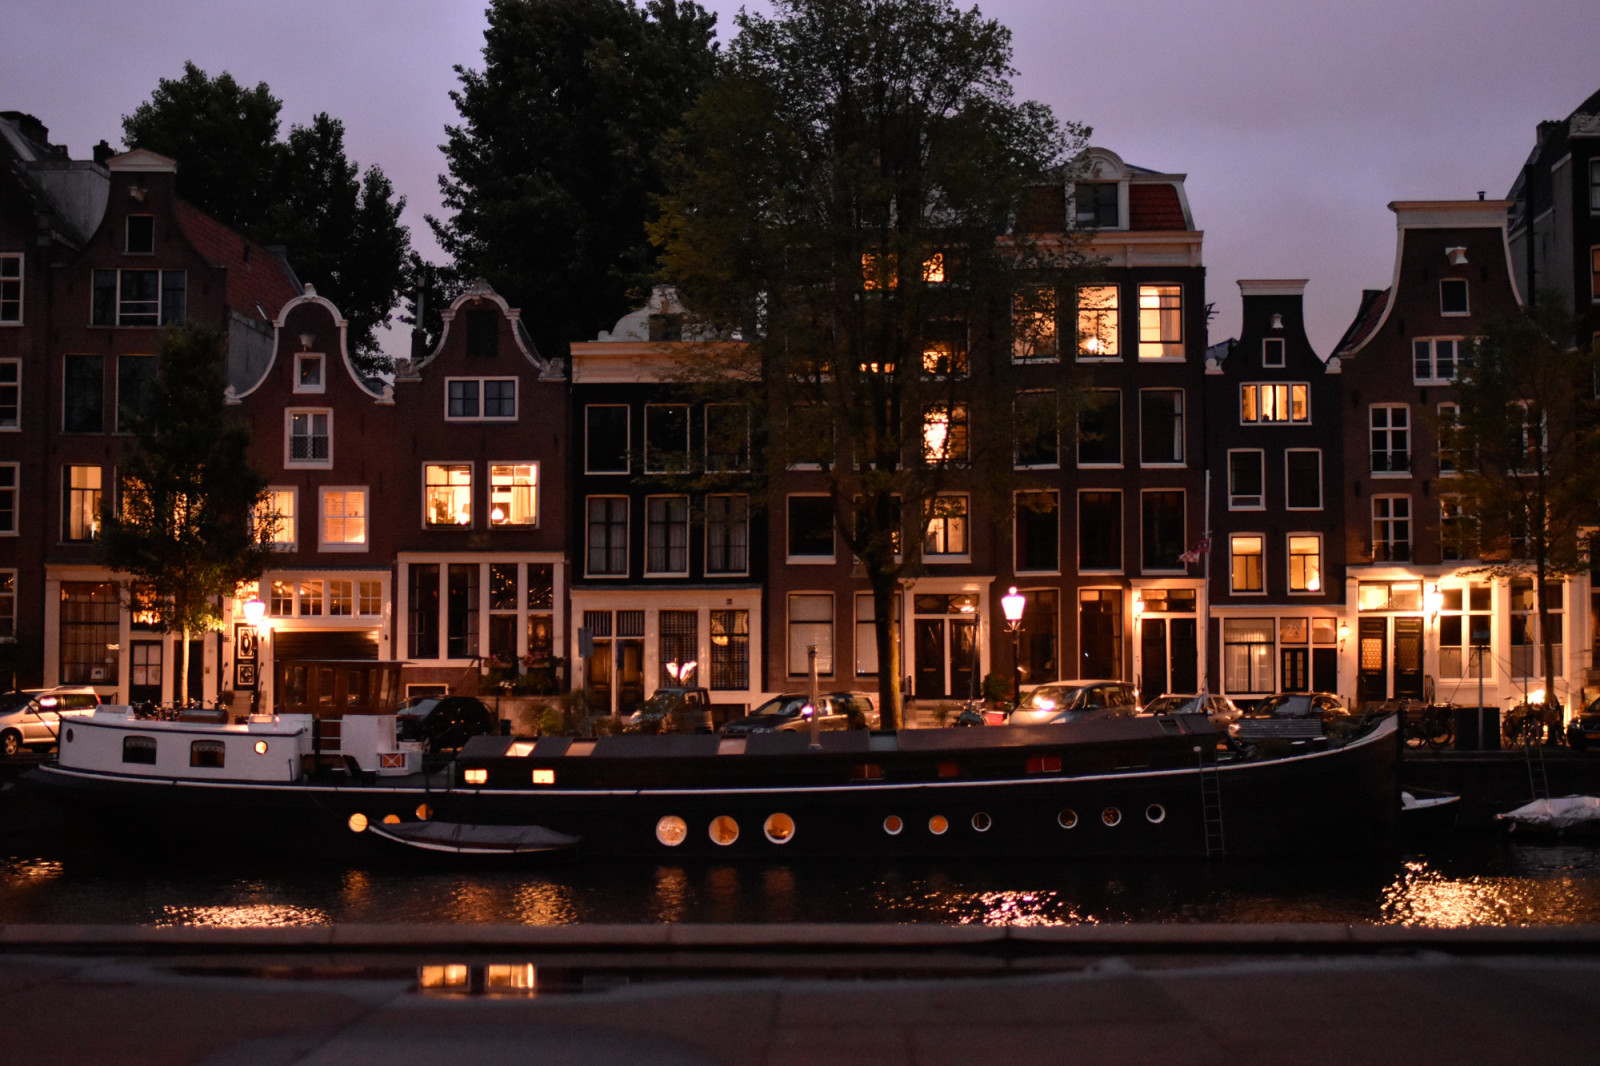 Amsterdam Photo Tours lighted houseboat